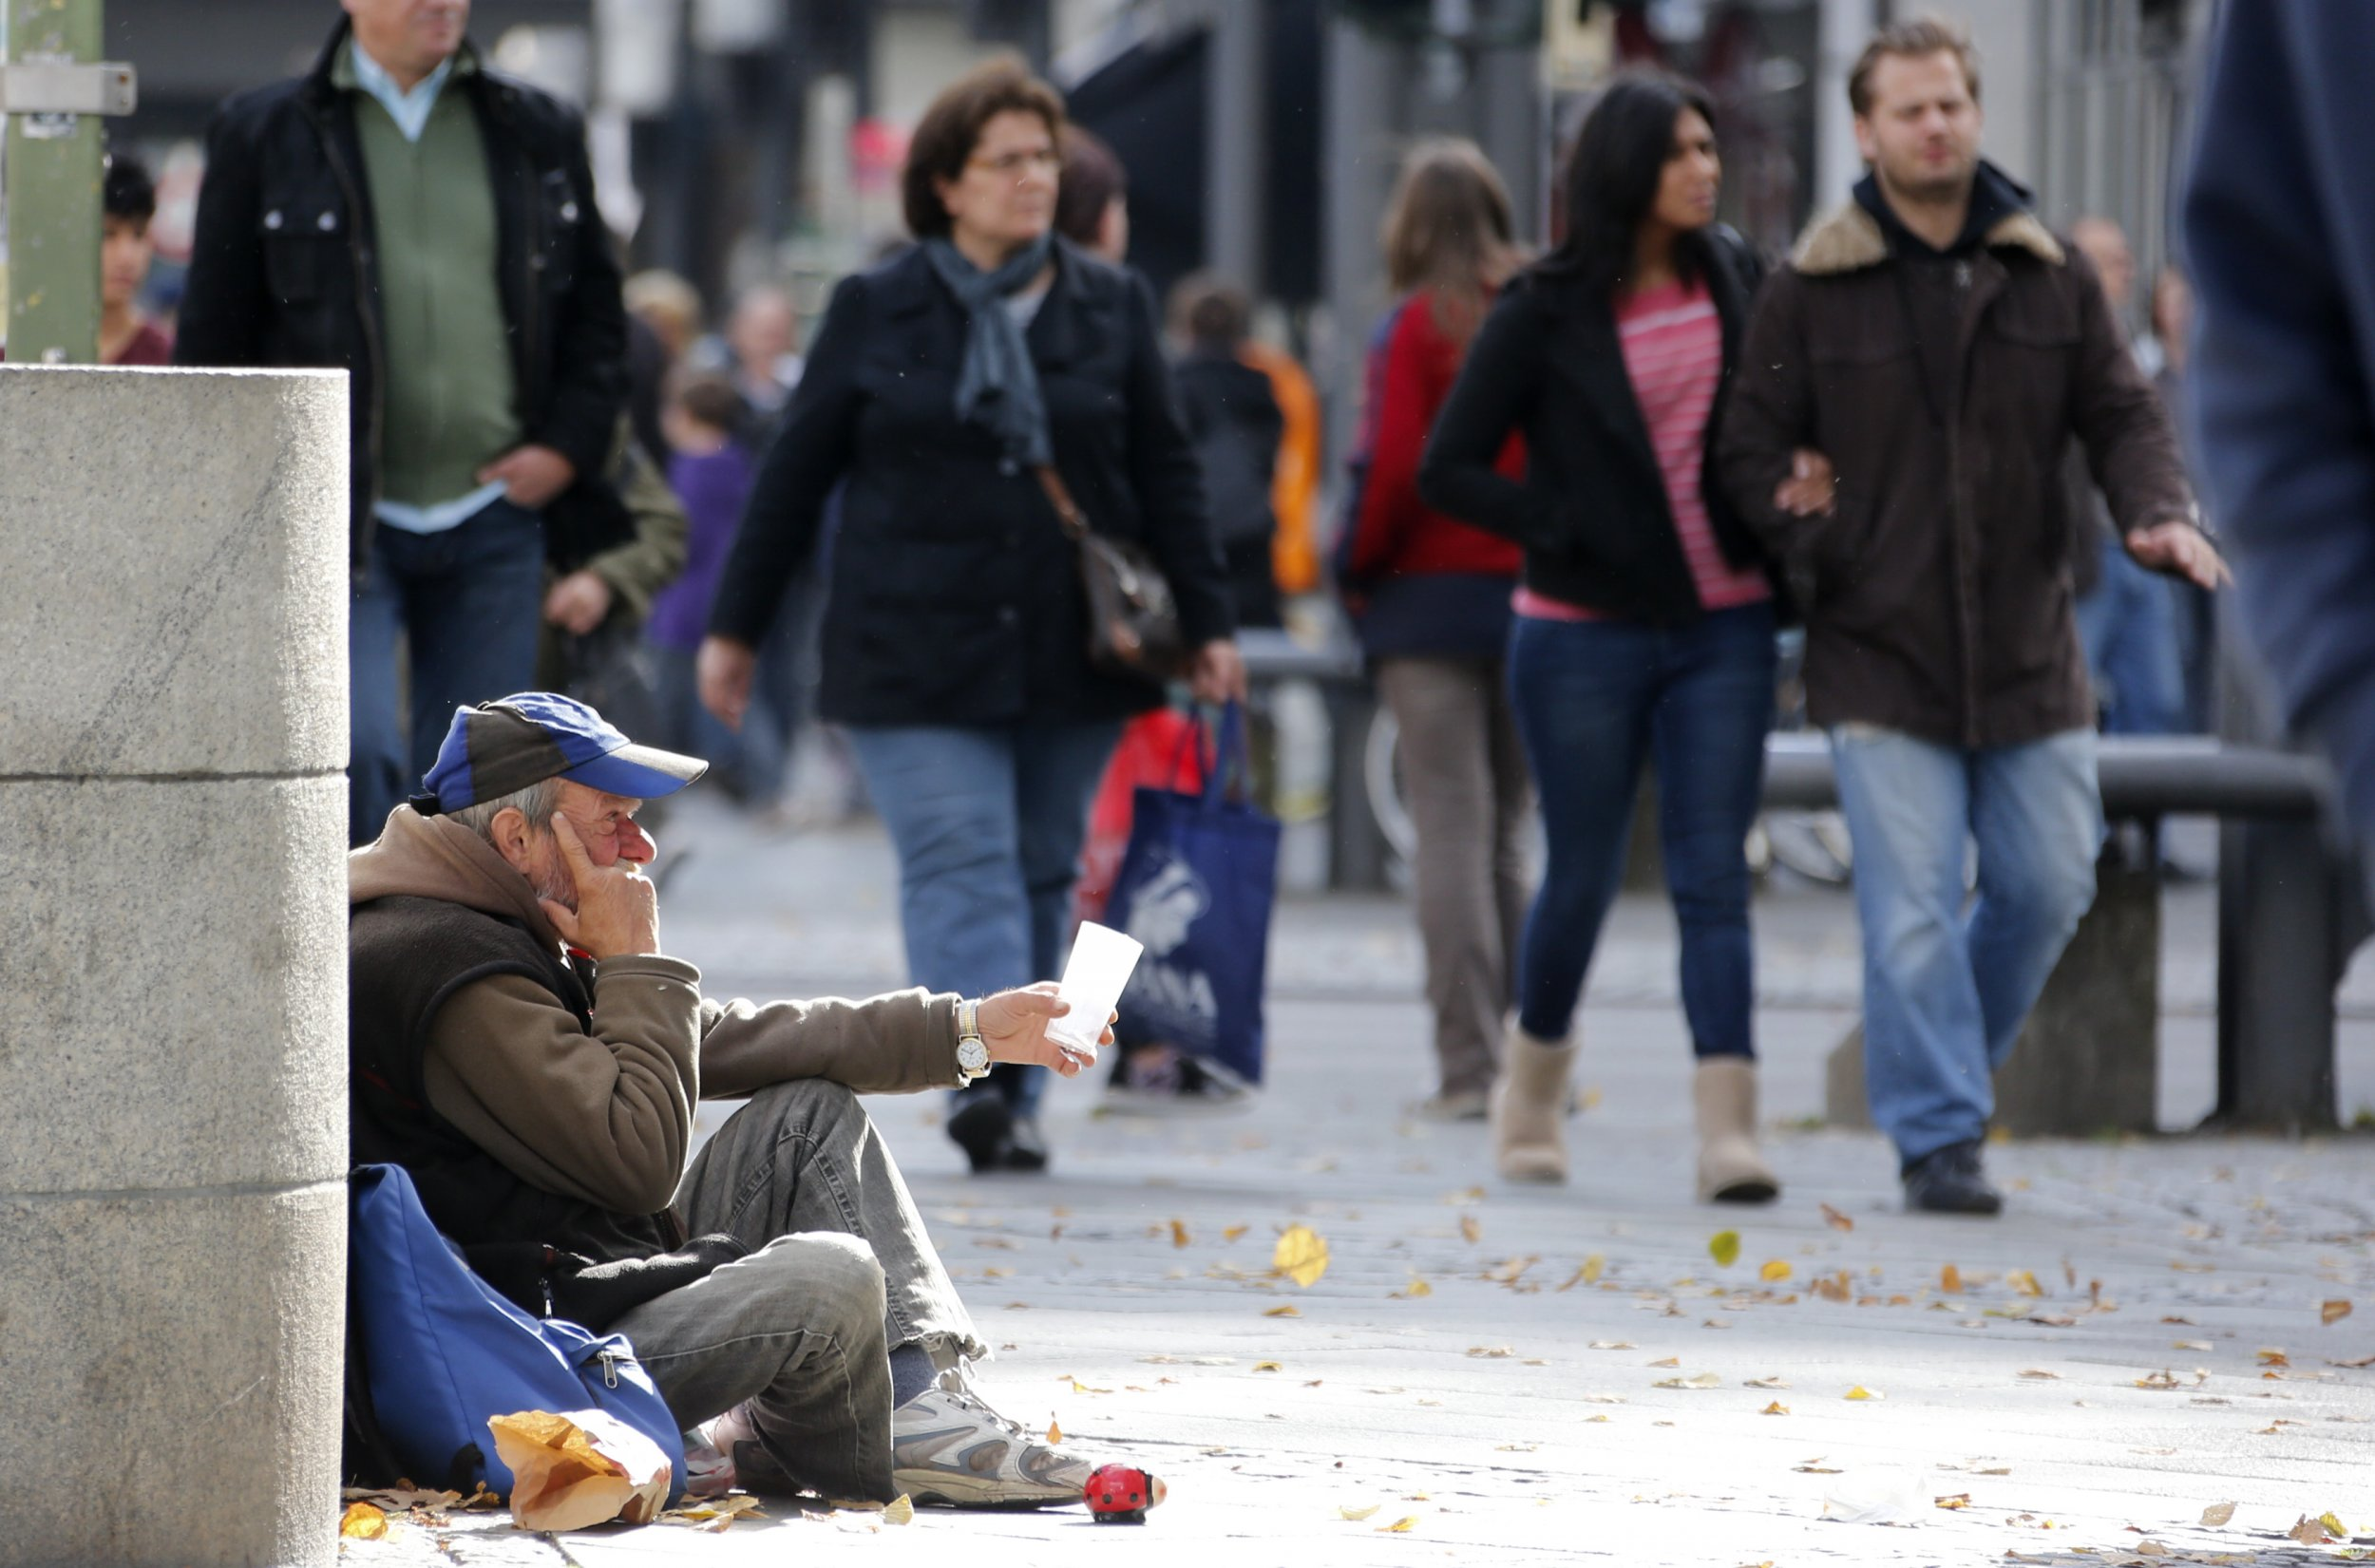 National Business Group On Health >> Poverty in Germany 'at Record High'